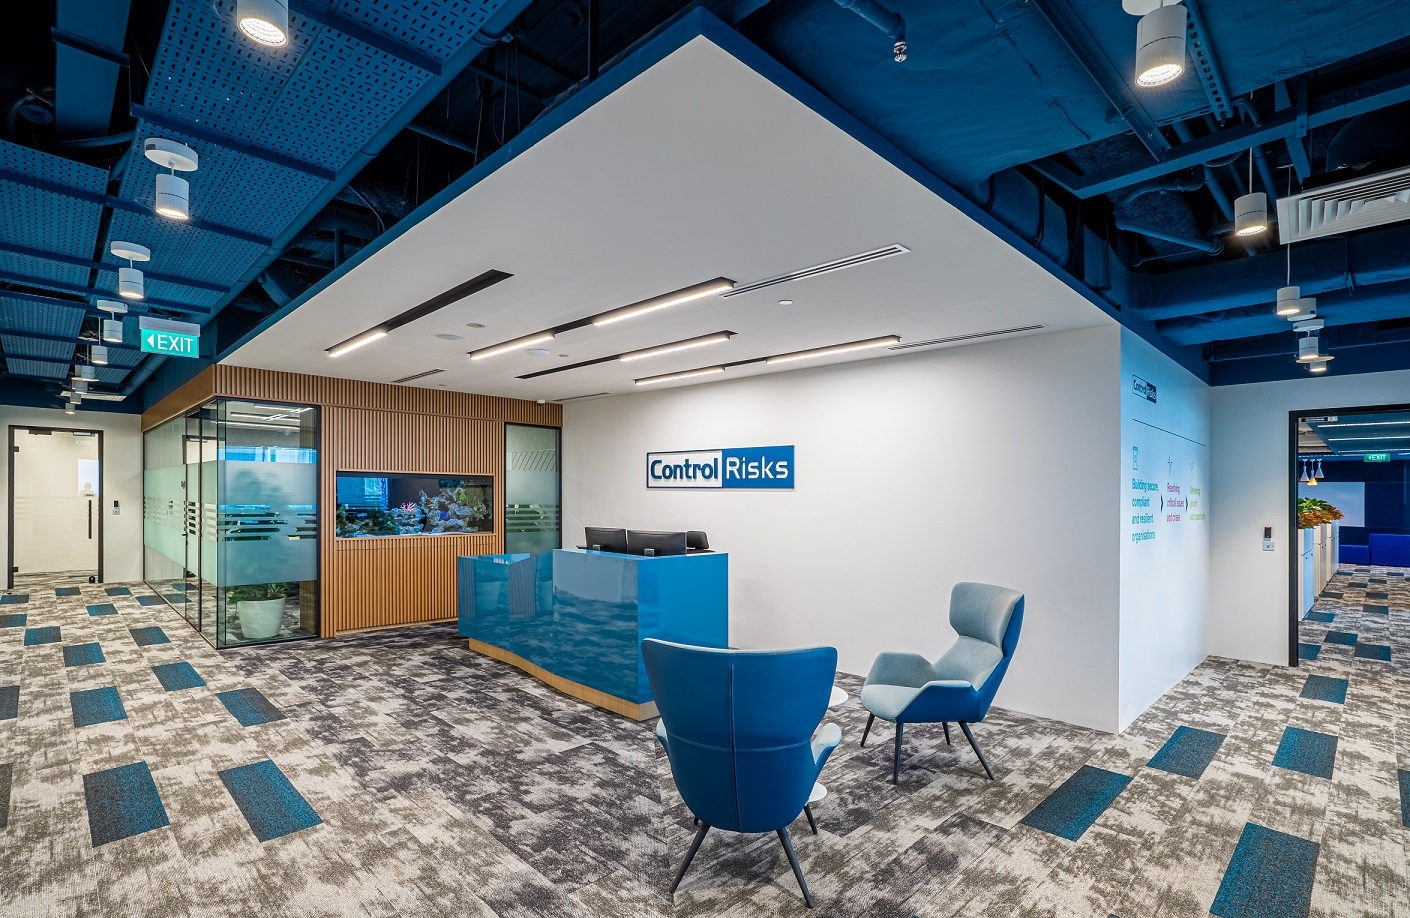 Control Risks transitioned to a new workplace strategy with the help of Space Matrix